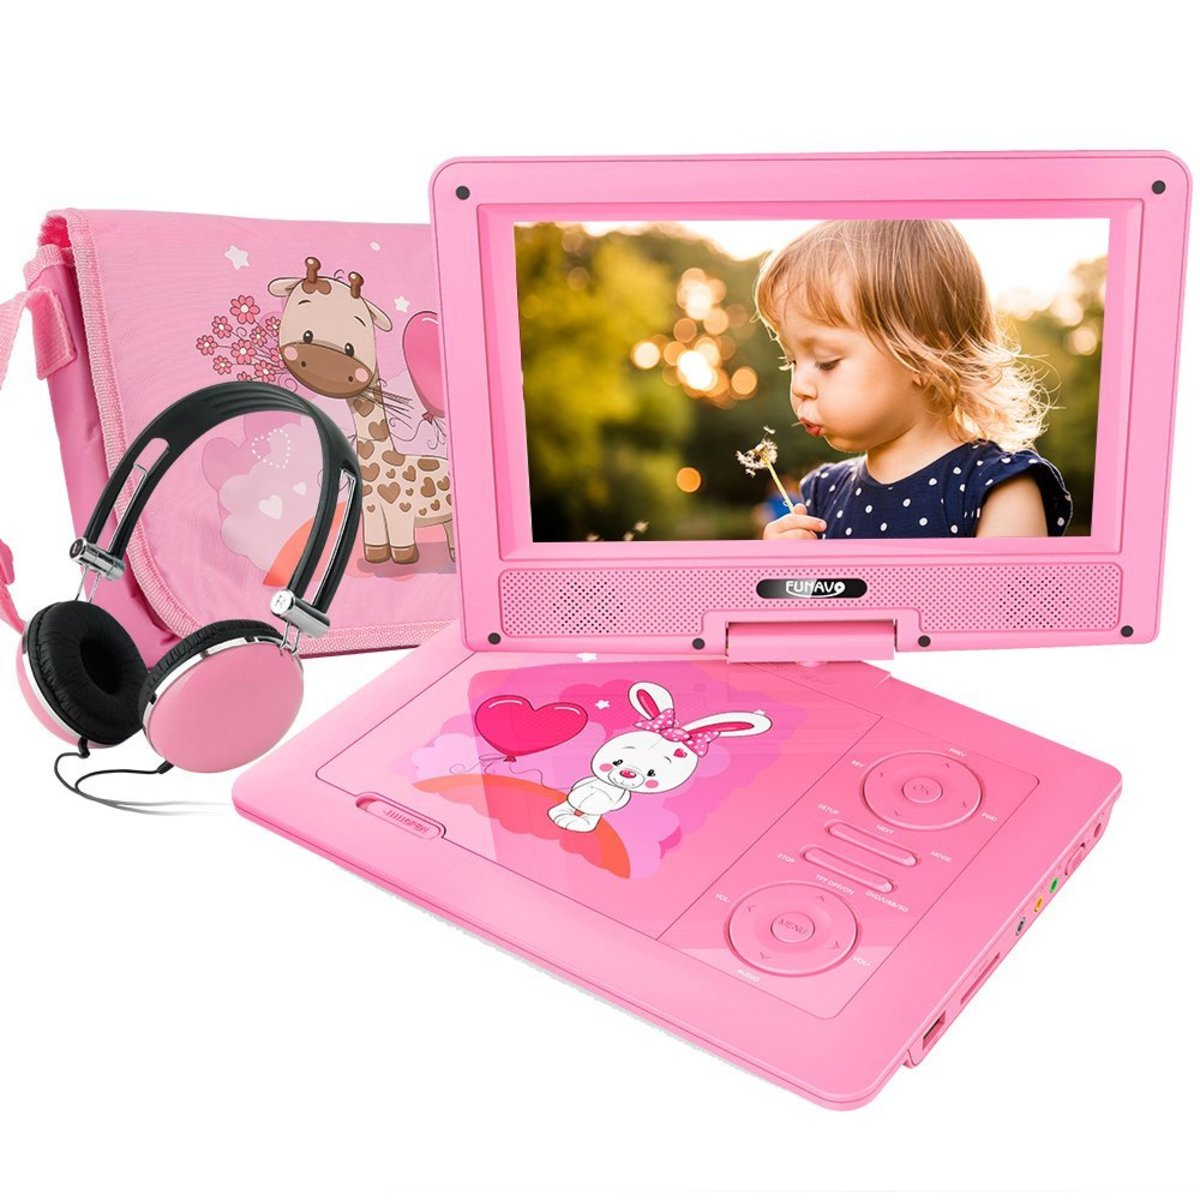 "The FUNAVO 9.5"". The FUNAVO was a great buy. The picture quality and audio are good, and it comes with matching headphones and carry case. The swivel screen is relatively large for a portable, and easy for my young daughter to use."